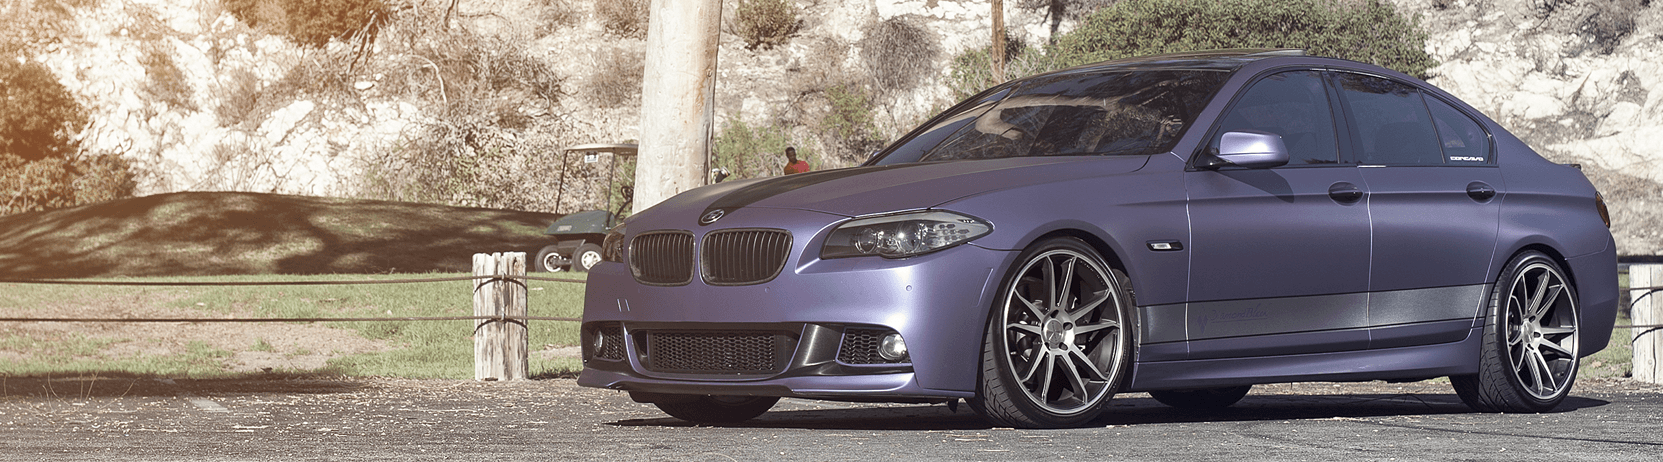 Purple BMW with windows tinted